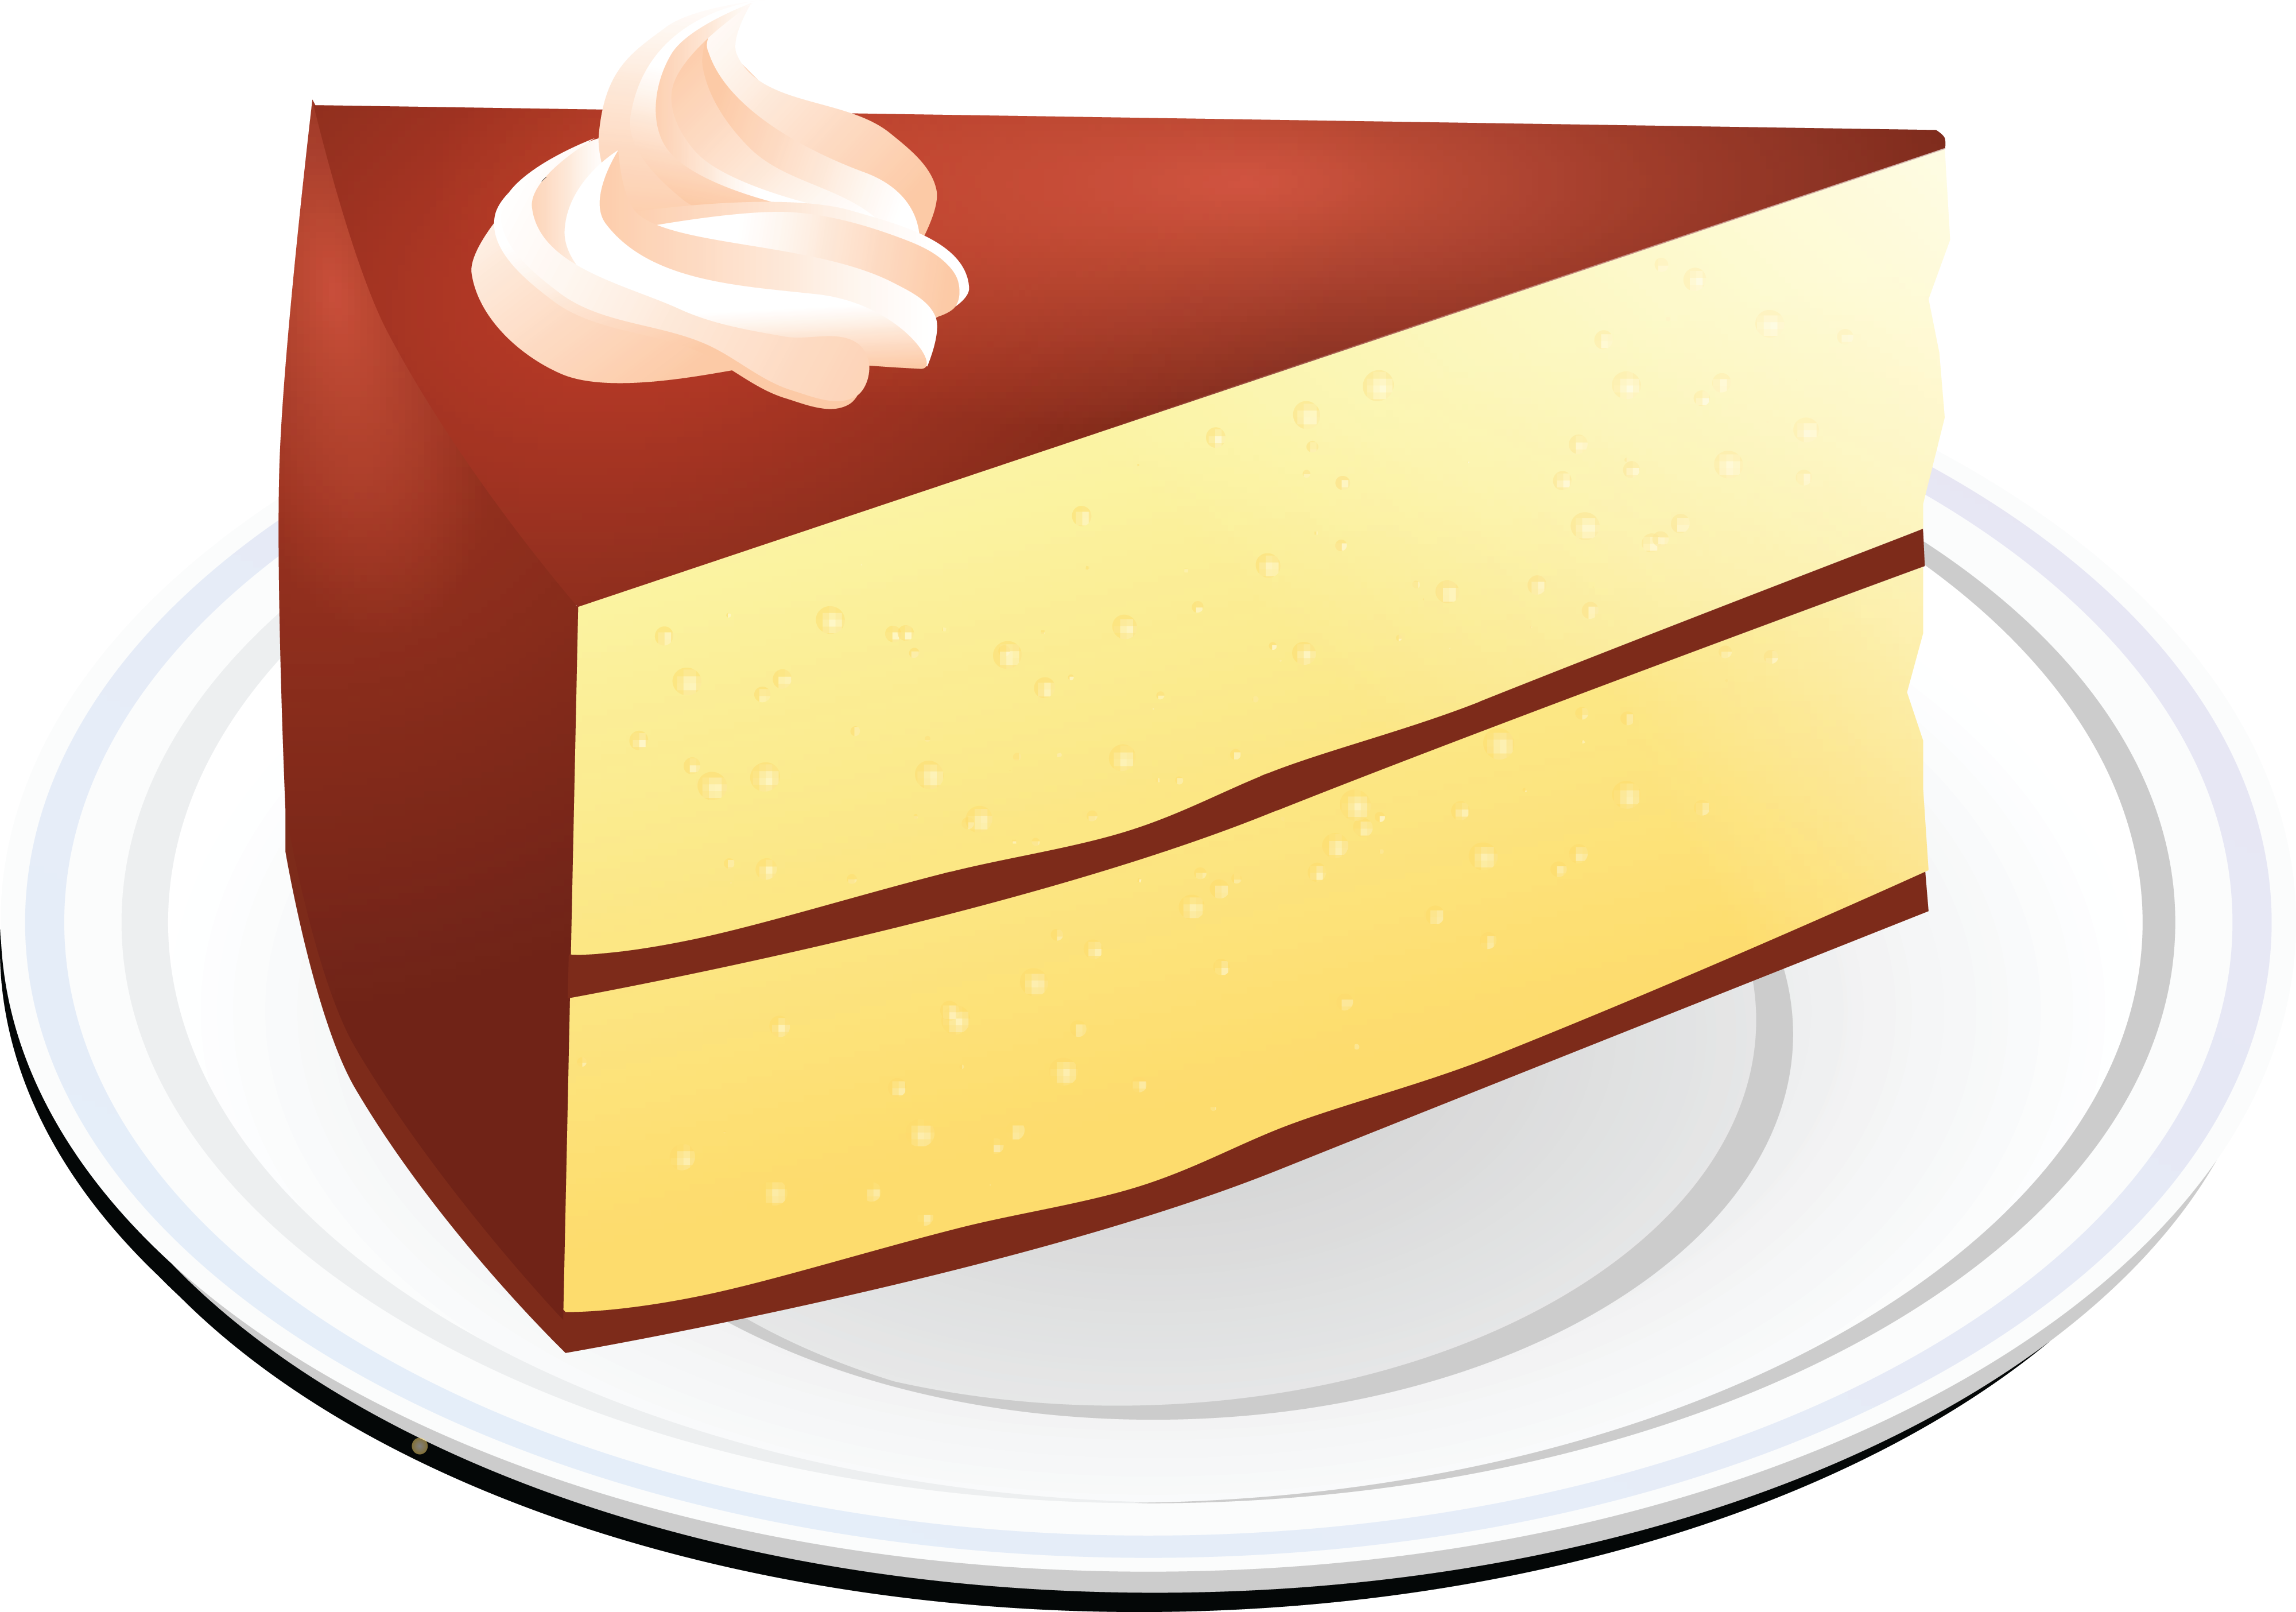 4000x2808 Free Clipart Of A Layered Vanilla Cake With Chocolate Frosting